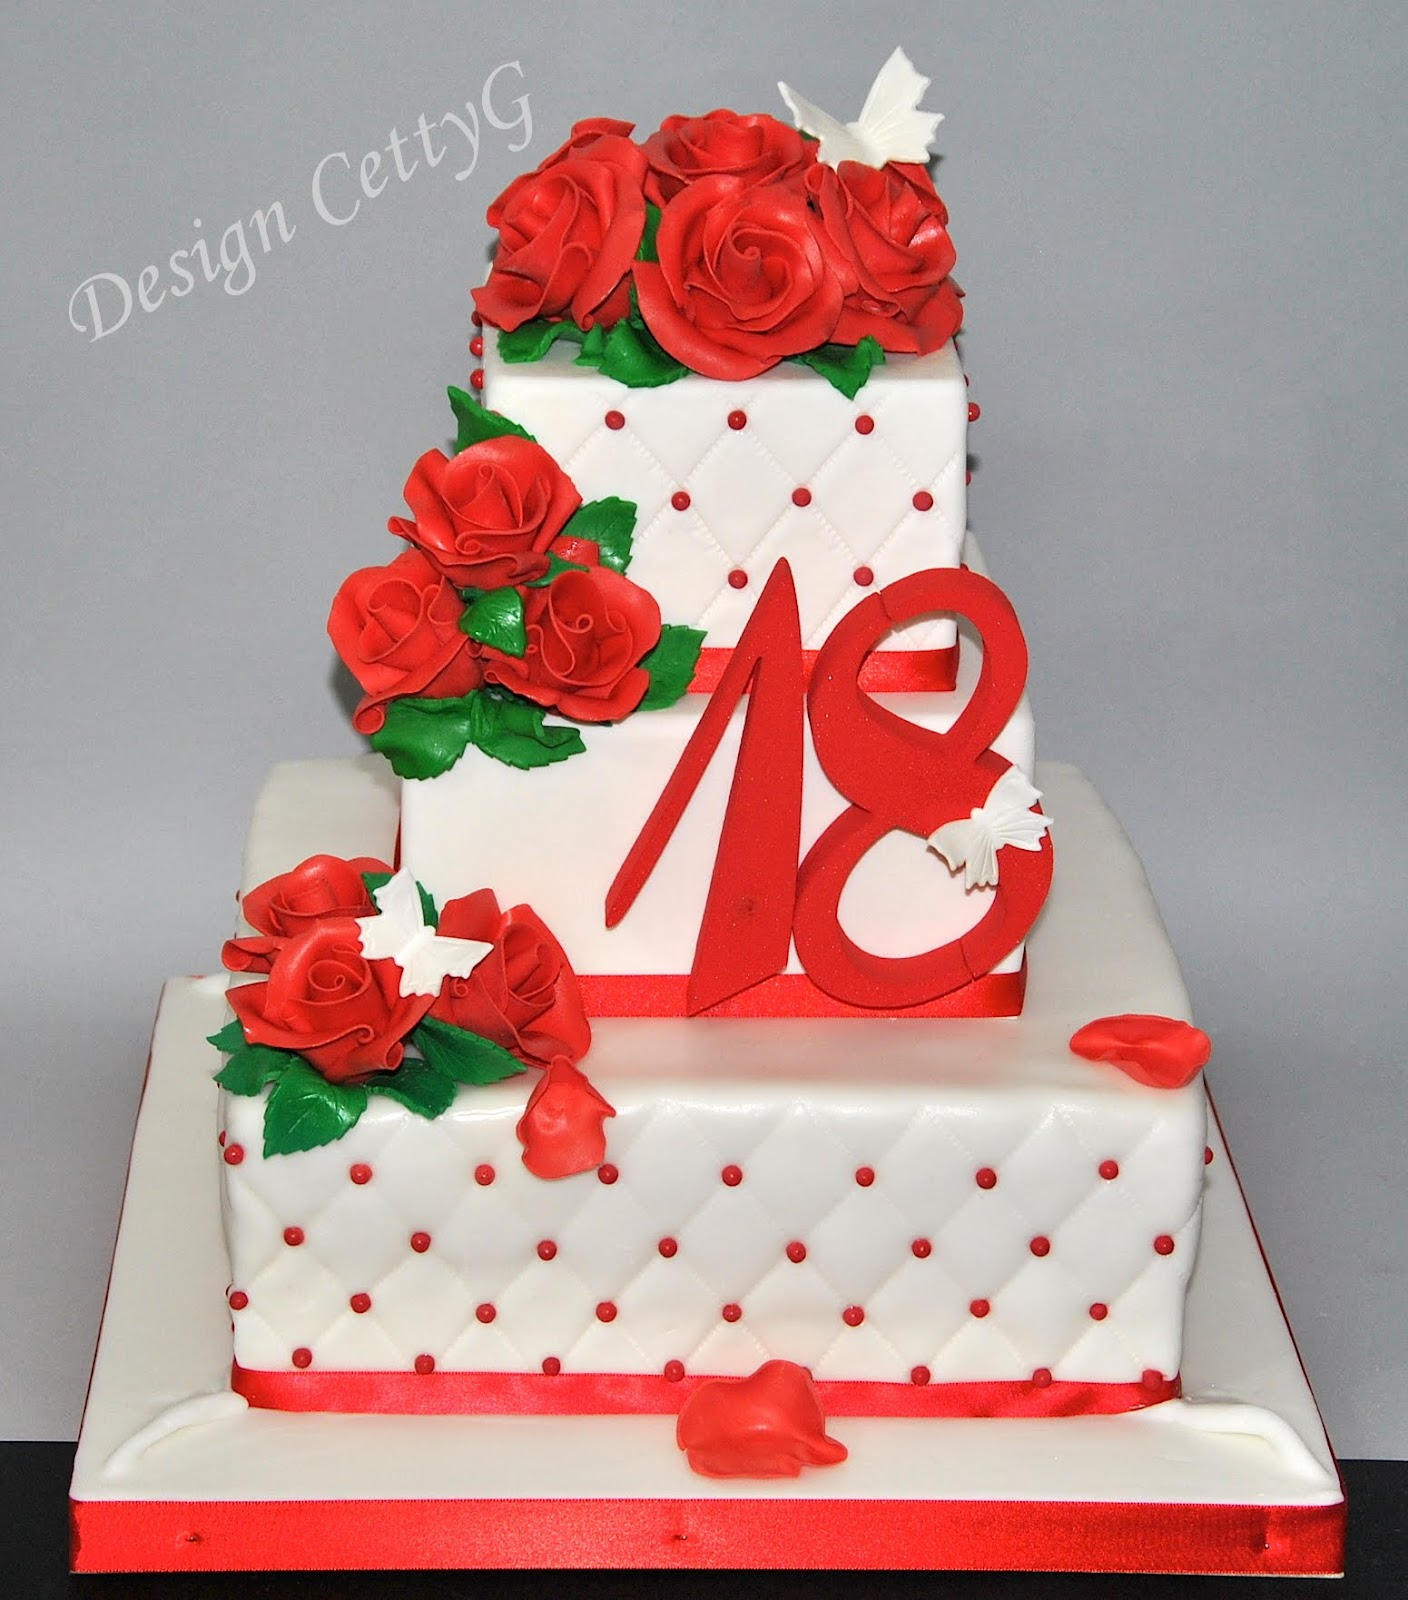 Favorito Le torte decorate di Cetty G: 18° Compleanno tra le rose. MT65